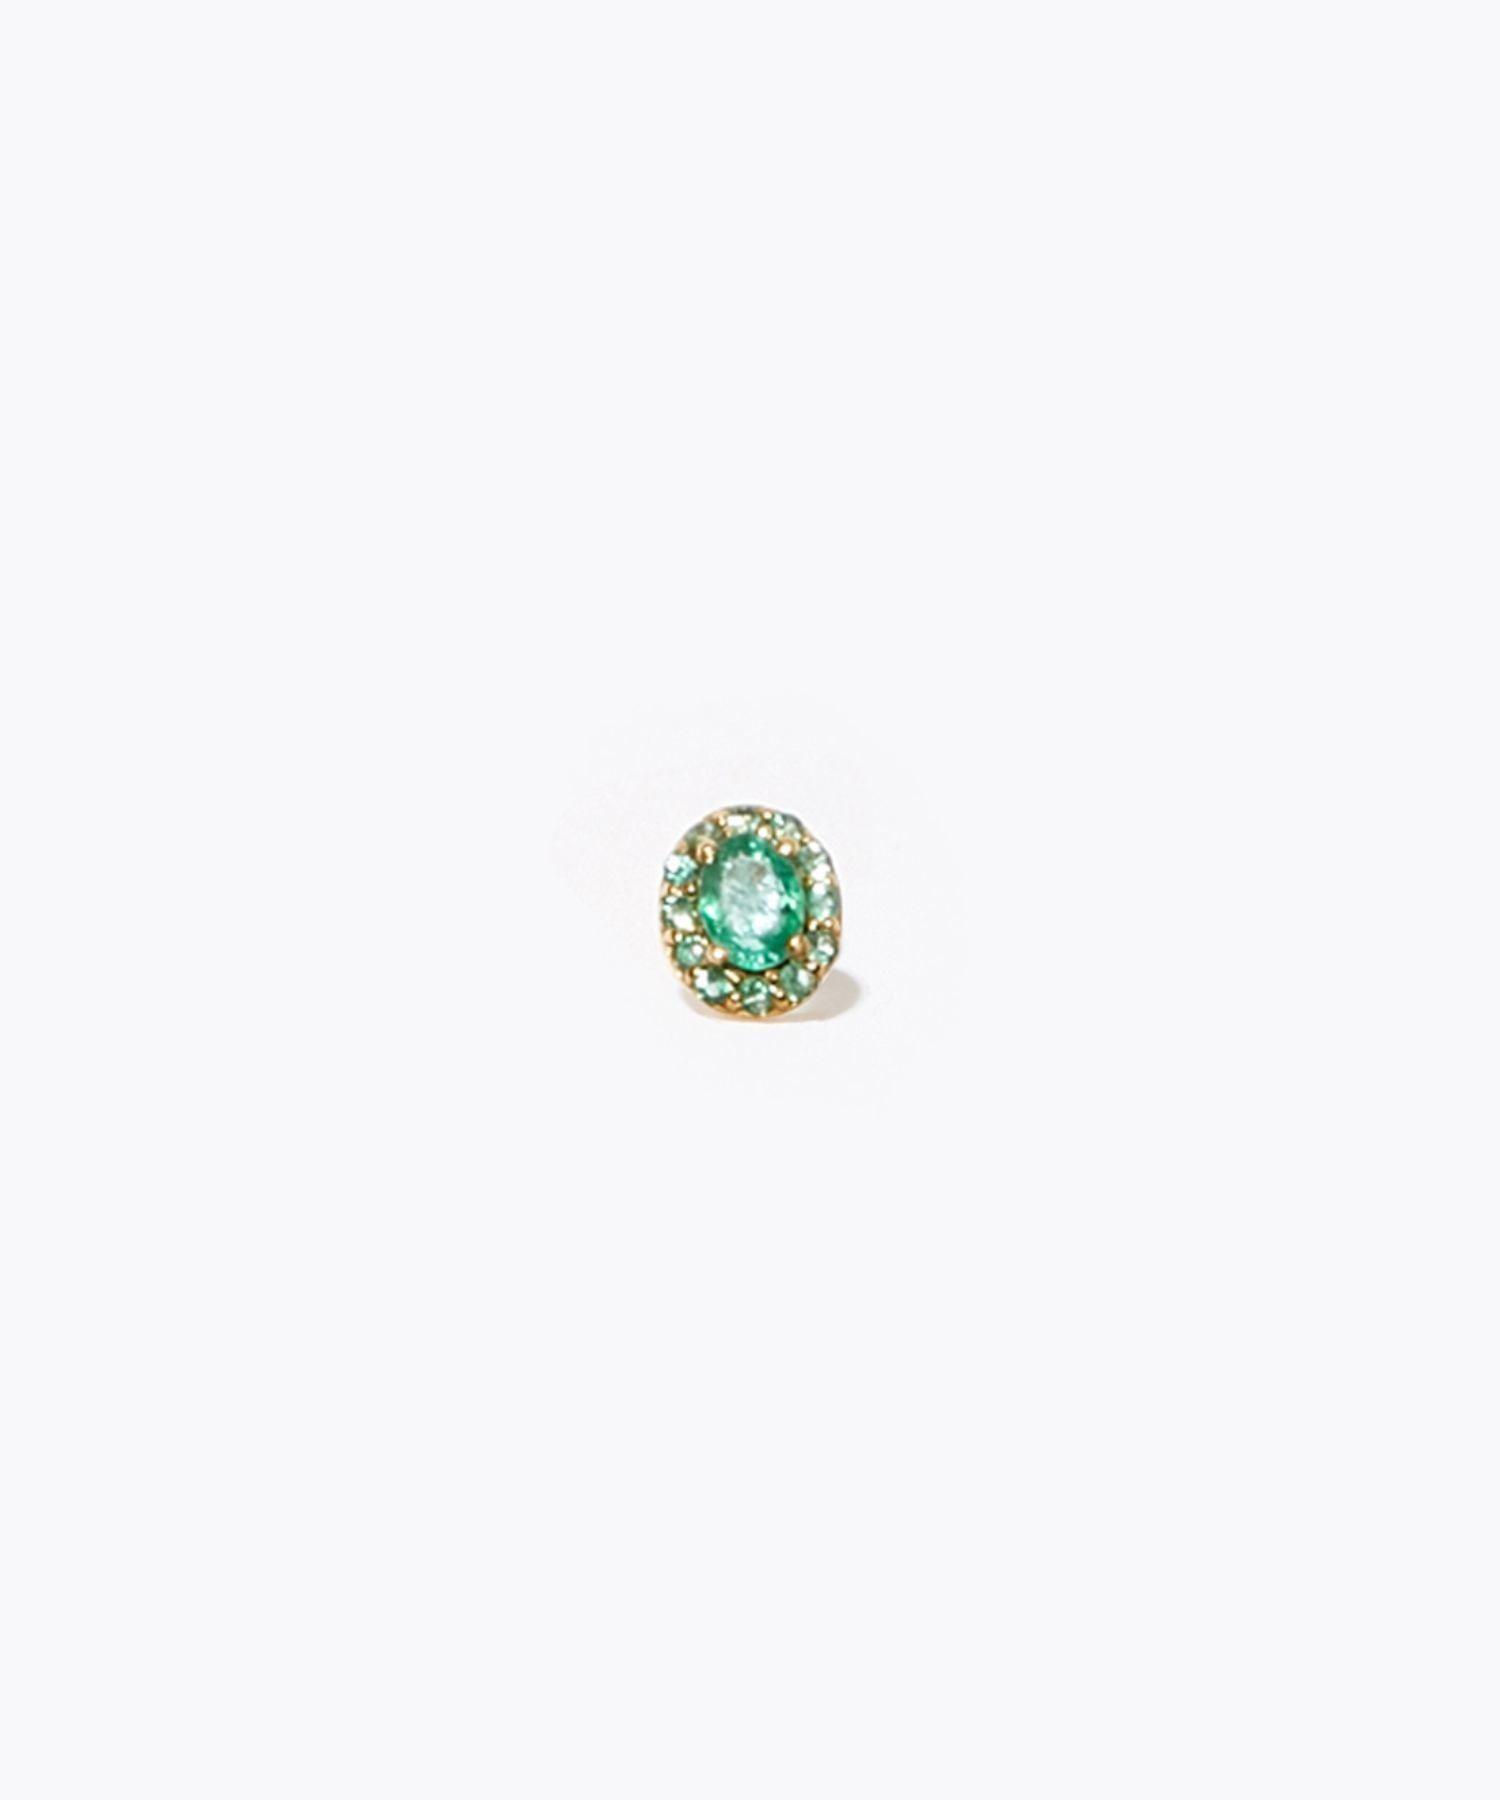 [eden] K10 oval emerald and pave emerald stud pierced earring